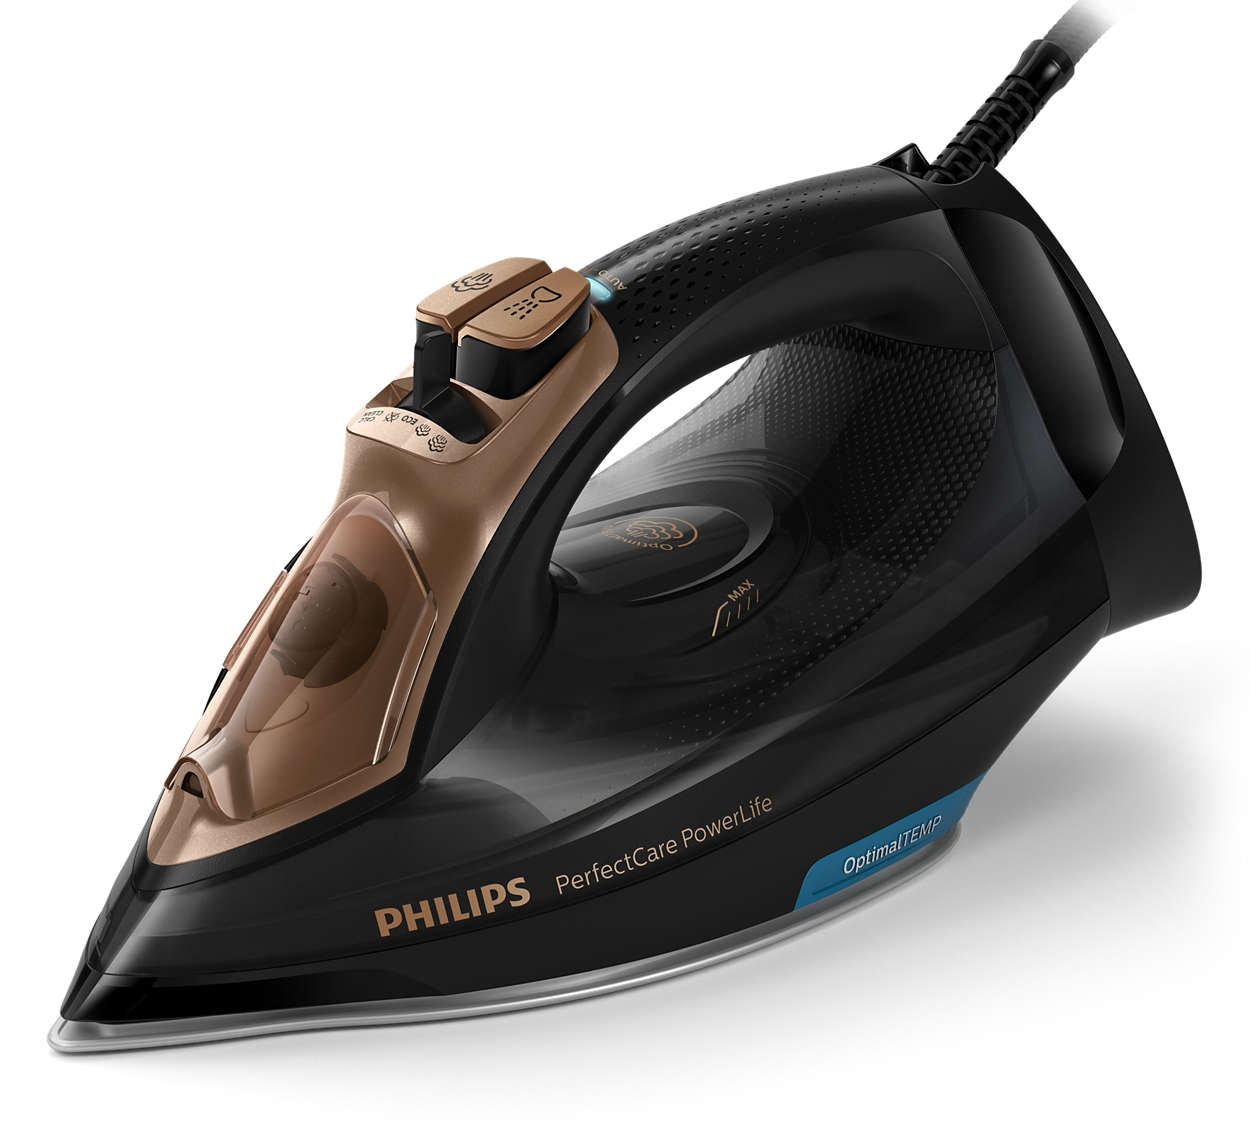 Паровой утюг Philips PerfectCare GC3929/64 фото